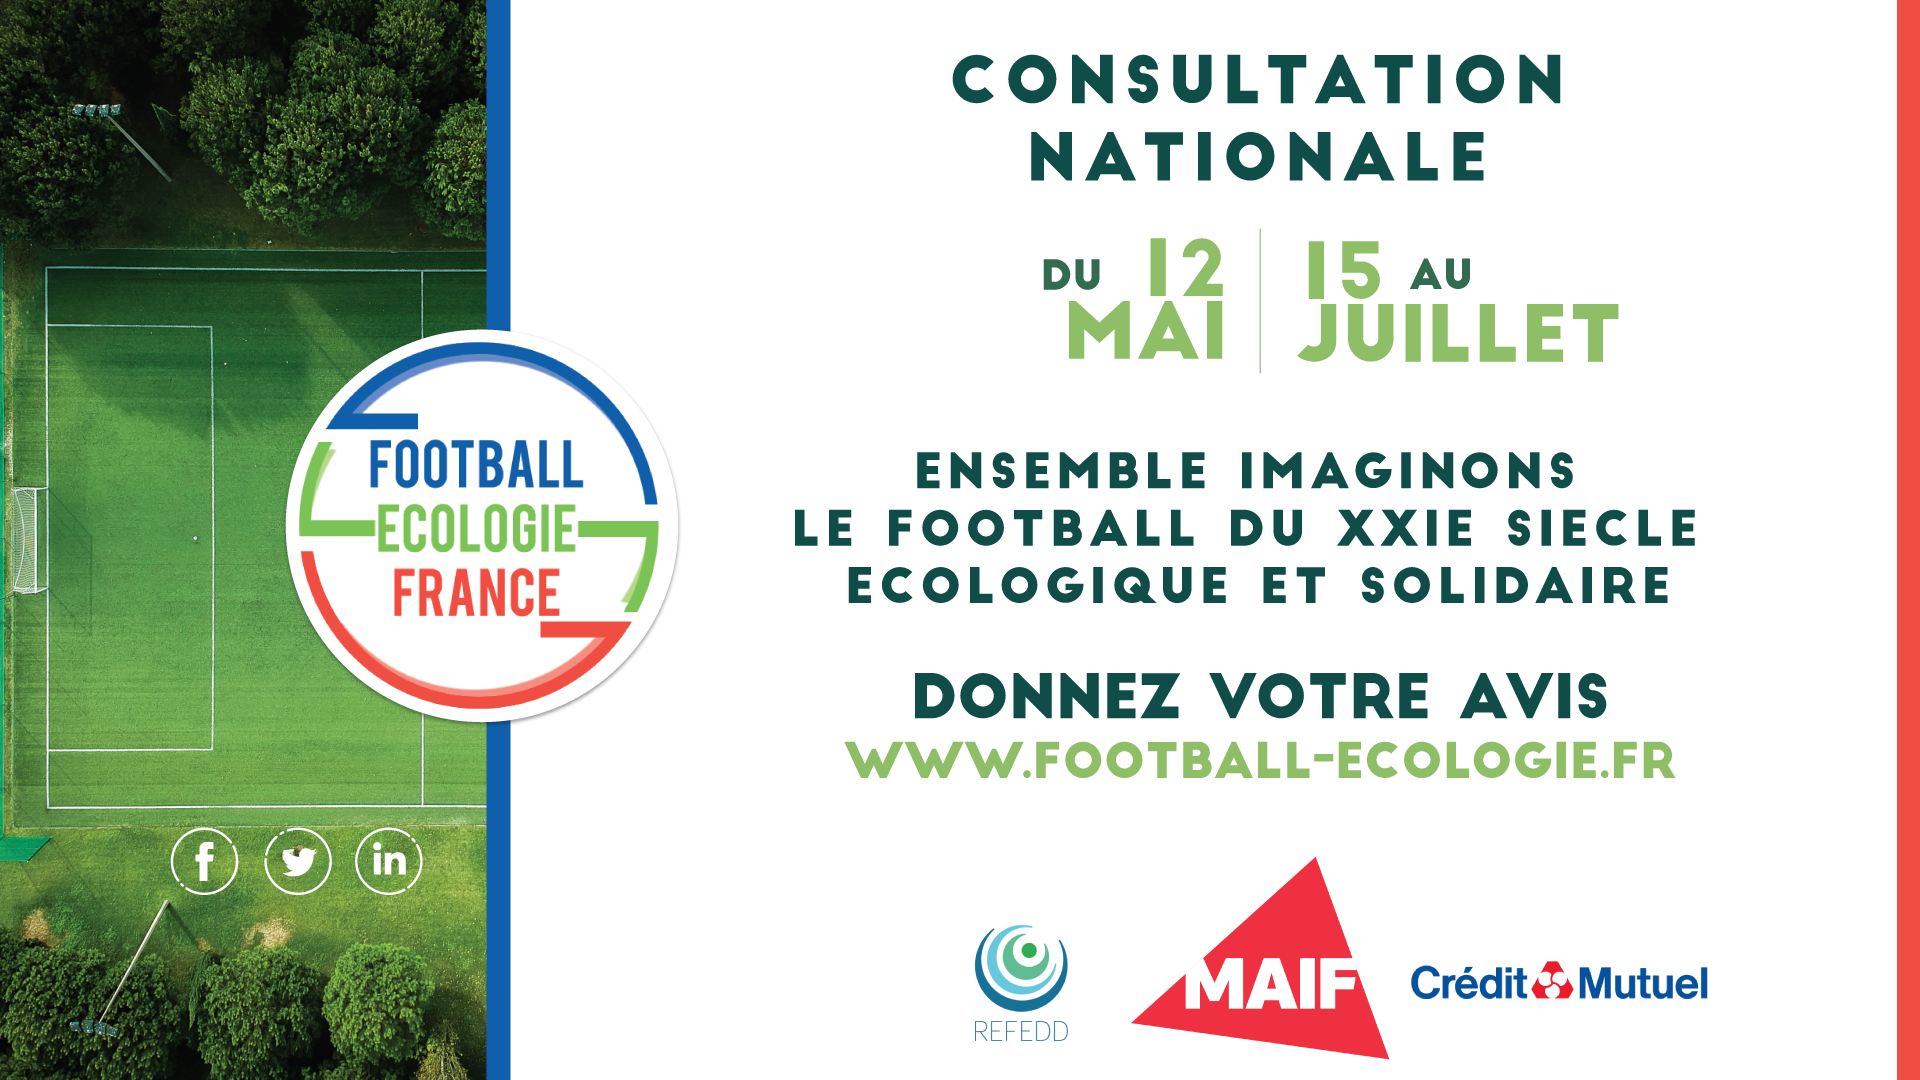 Football-Ecologie-France-Consultation-Ecolosport